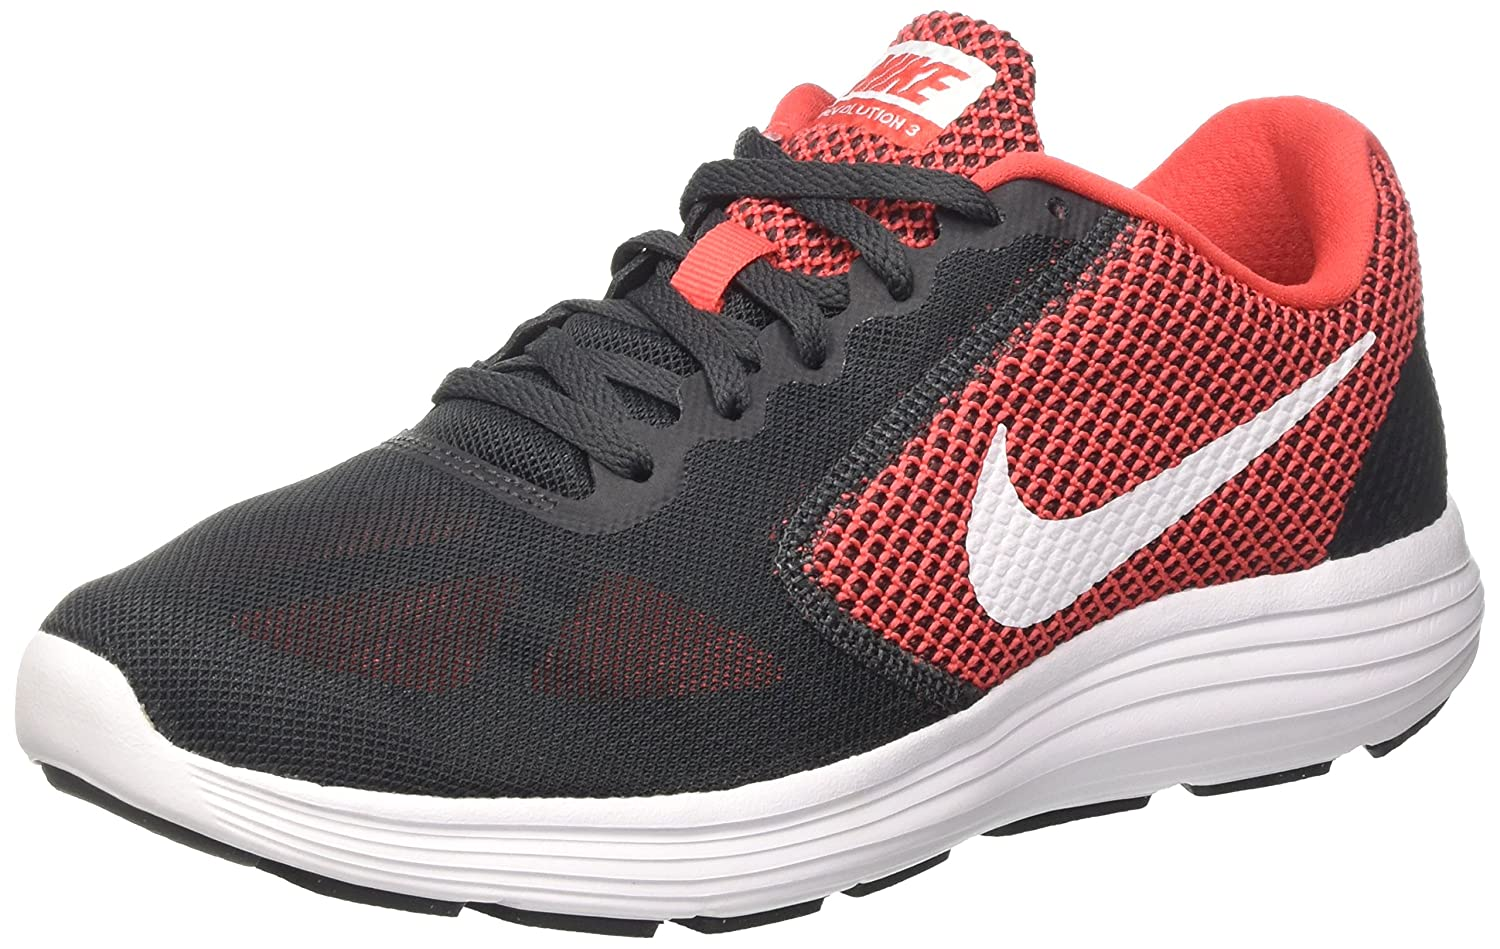 Nike Herren Revolution 3 Laufschuhe, Mehrfarbig (University Red/Metallic Silver-Black-White 600), 42 EU -